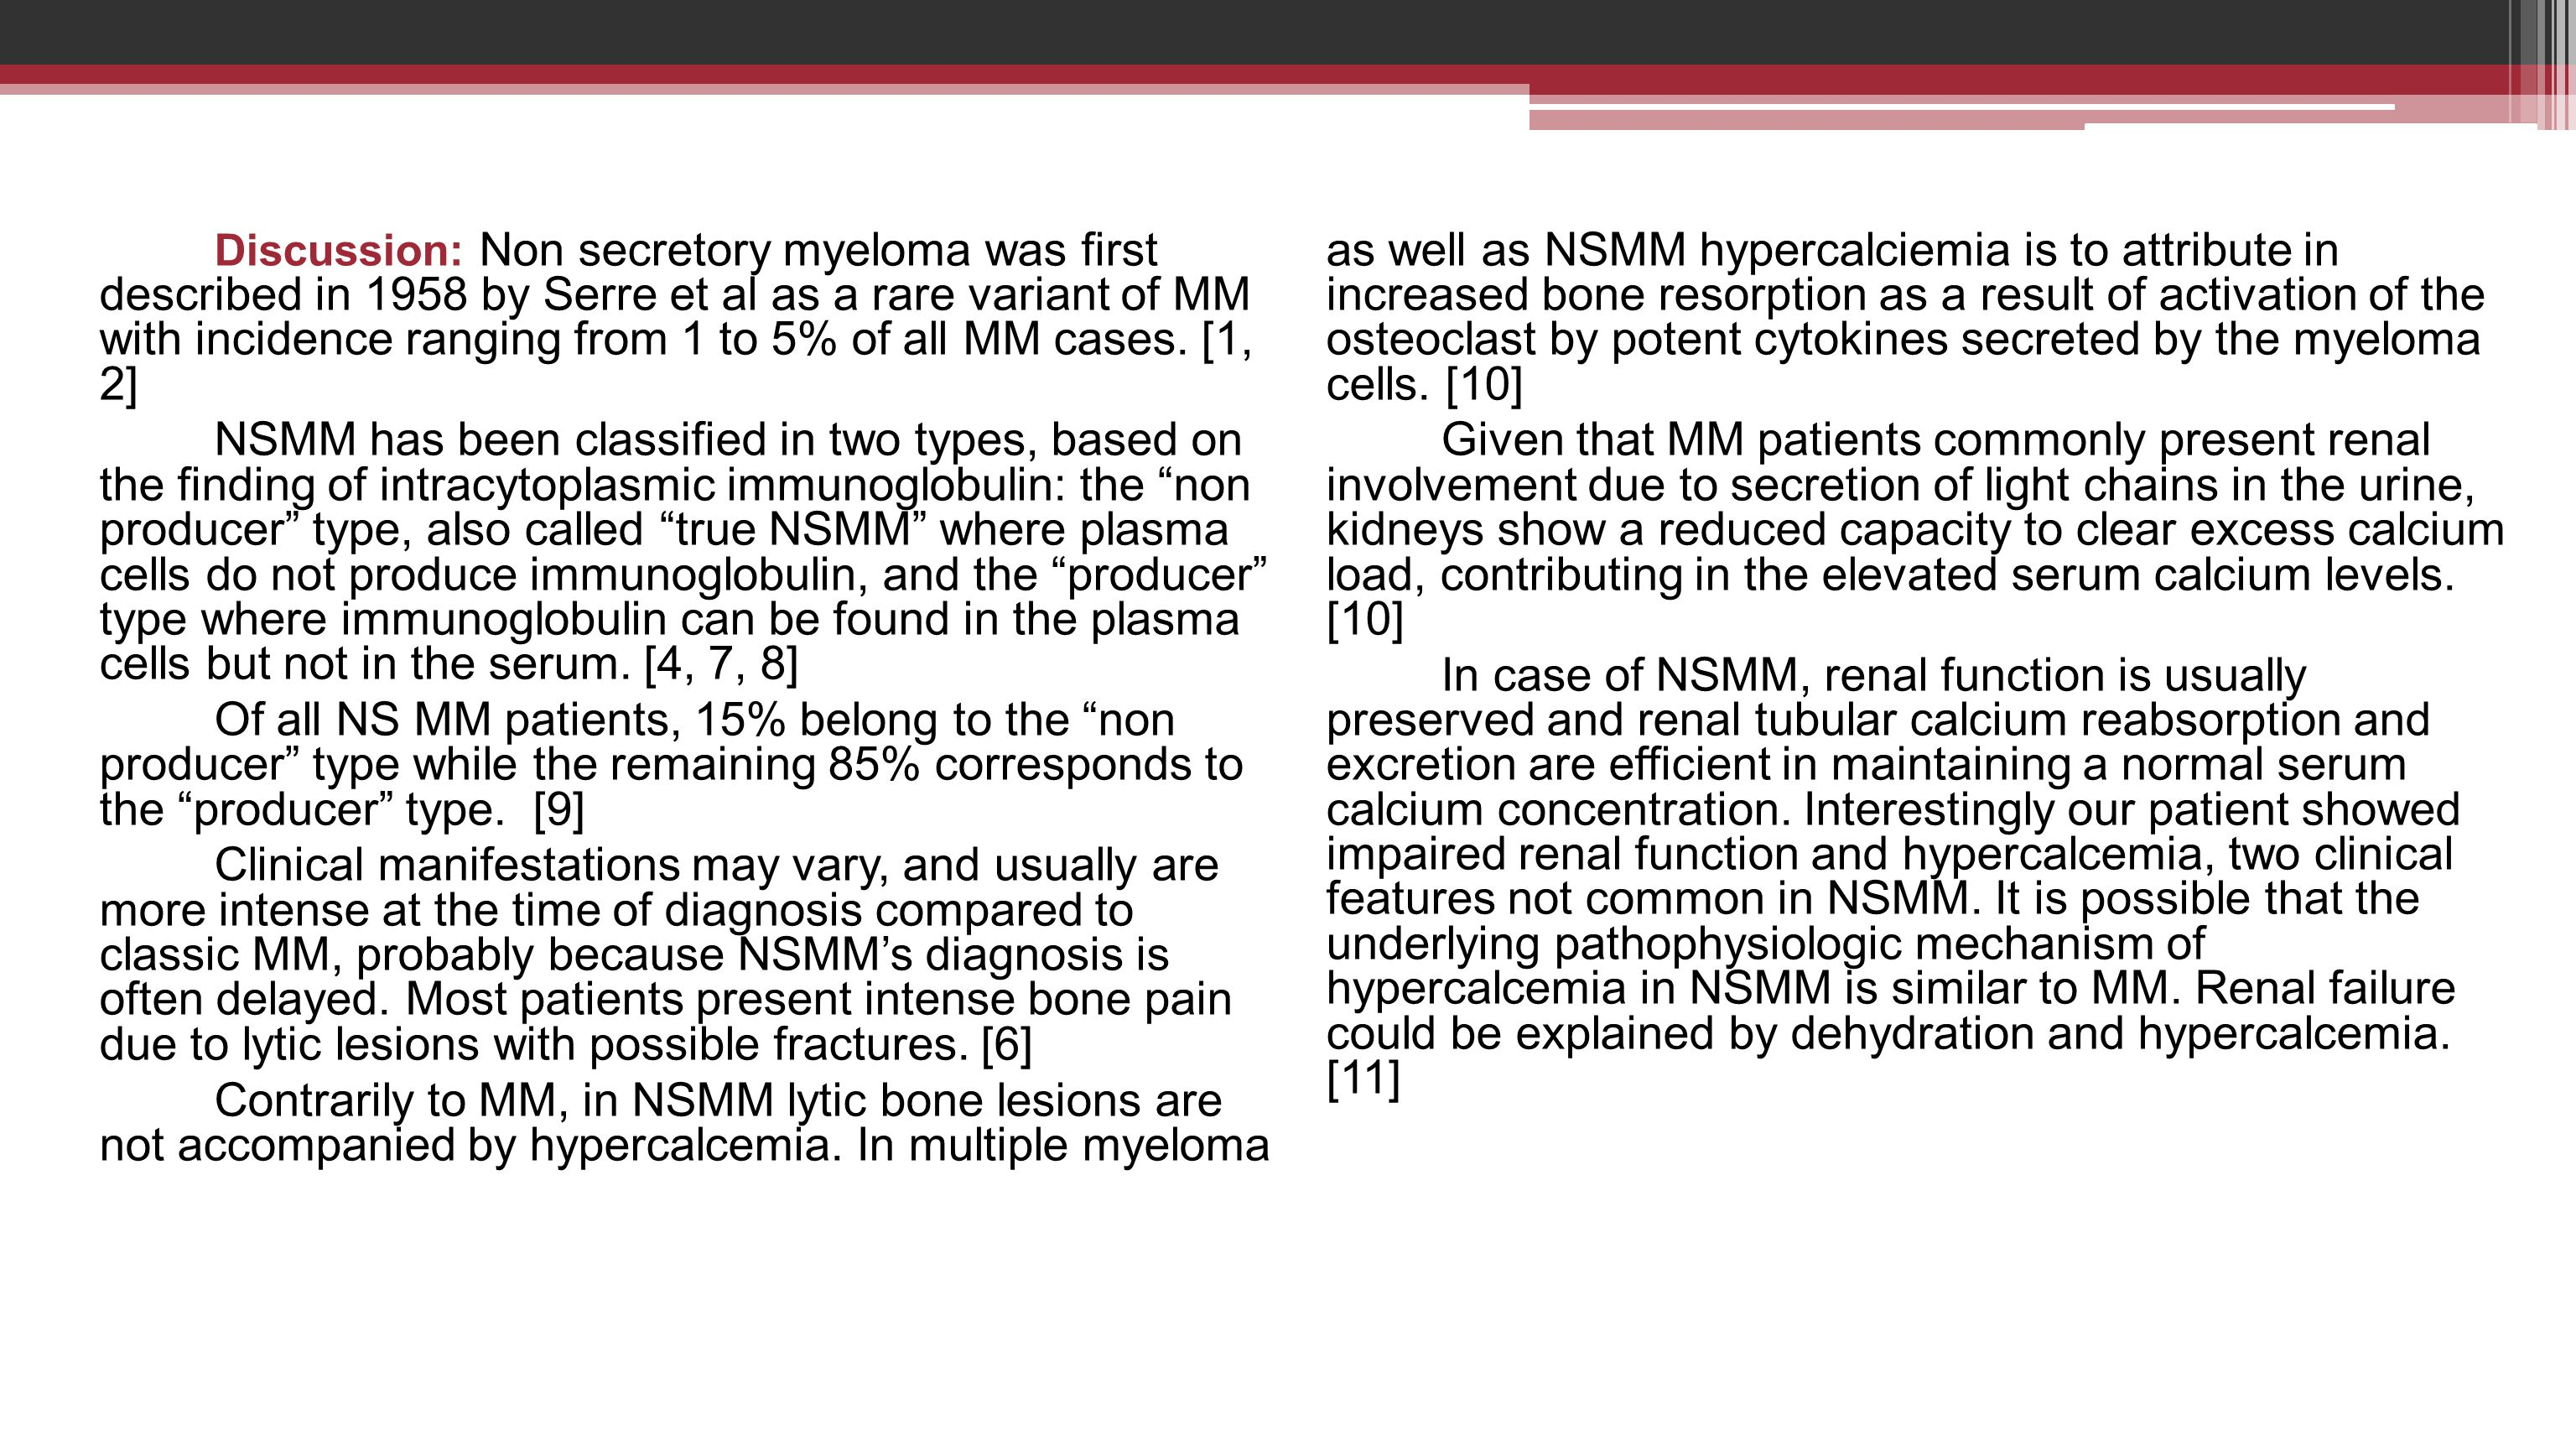 Discussion: Non secretory myeloma was first described in 1958 by Serre et al as a rare variant of MM with incidence ranging from 1 to 5% of all MM cas